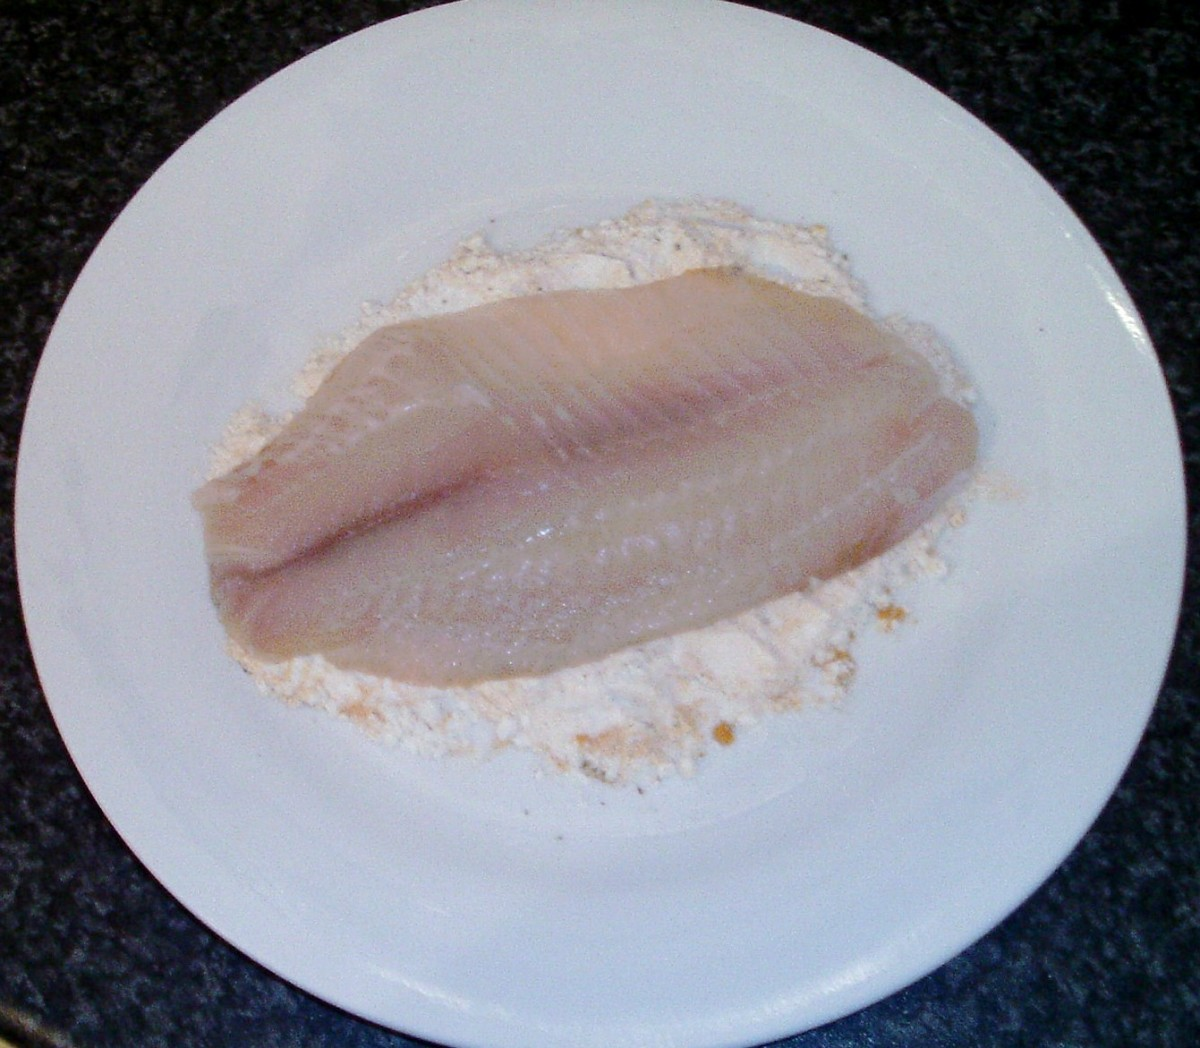 Tilapia fillet is patted in seasoned flour